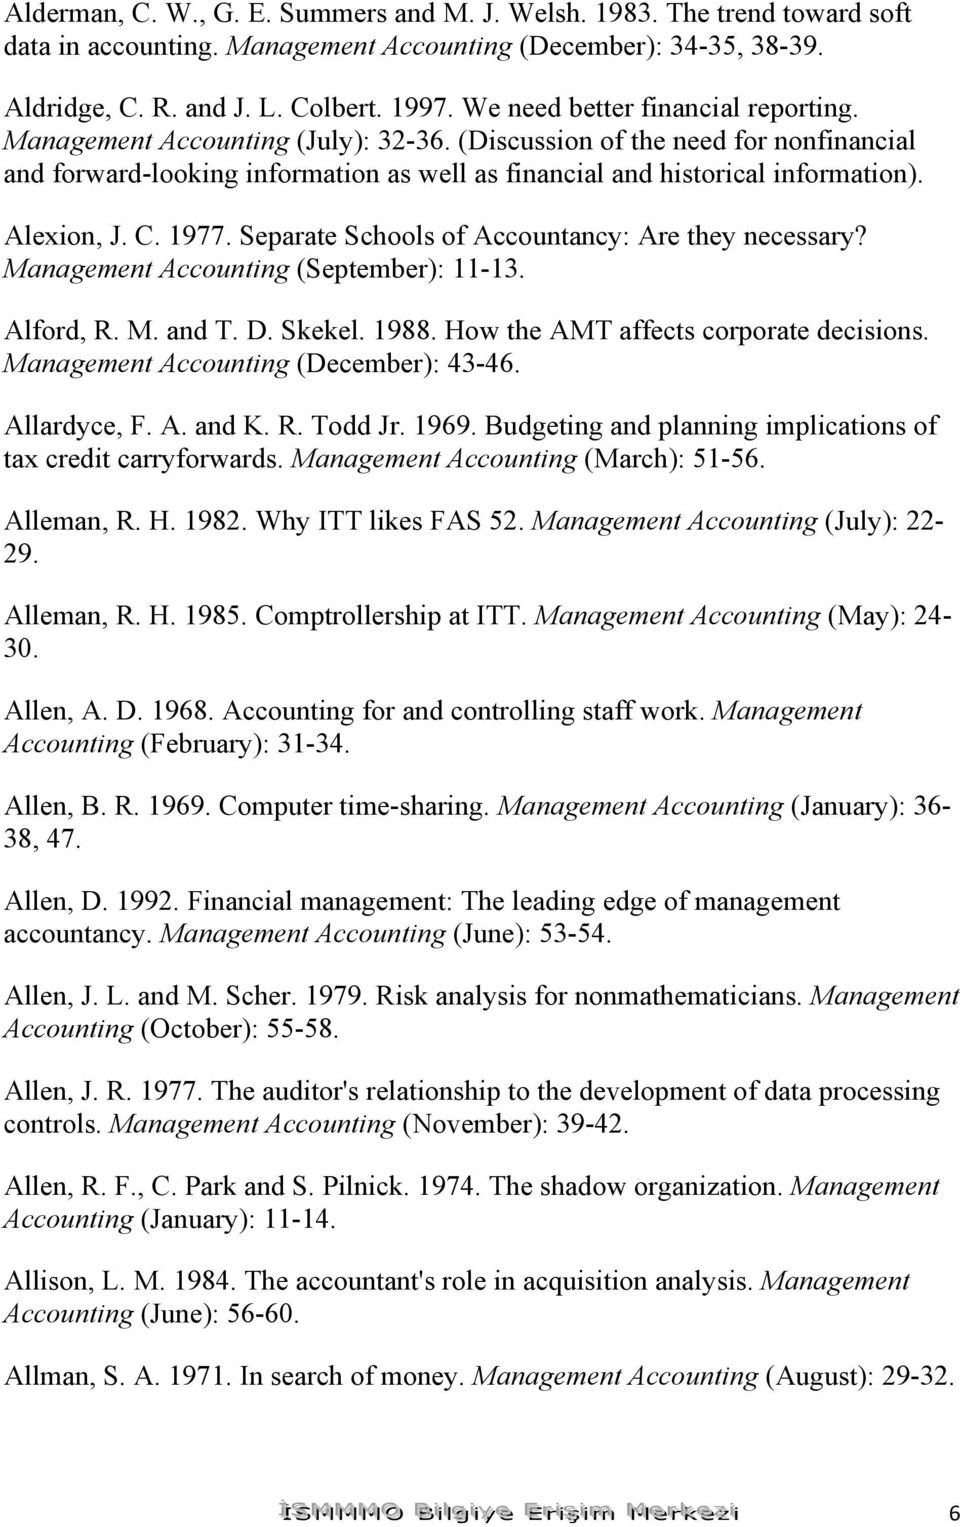 Alexion, J. C. 1977. Separate Schools of Accountancy: Are they necessary? Management Accounting (September): 11-13. Alford, R. M. and T. D. Skekel. 1988. How the AMT affects corporate decisions.